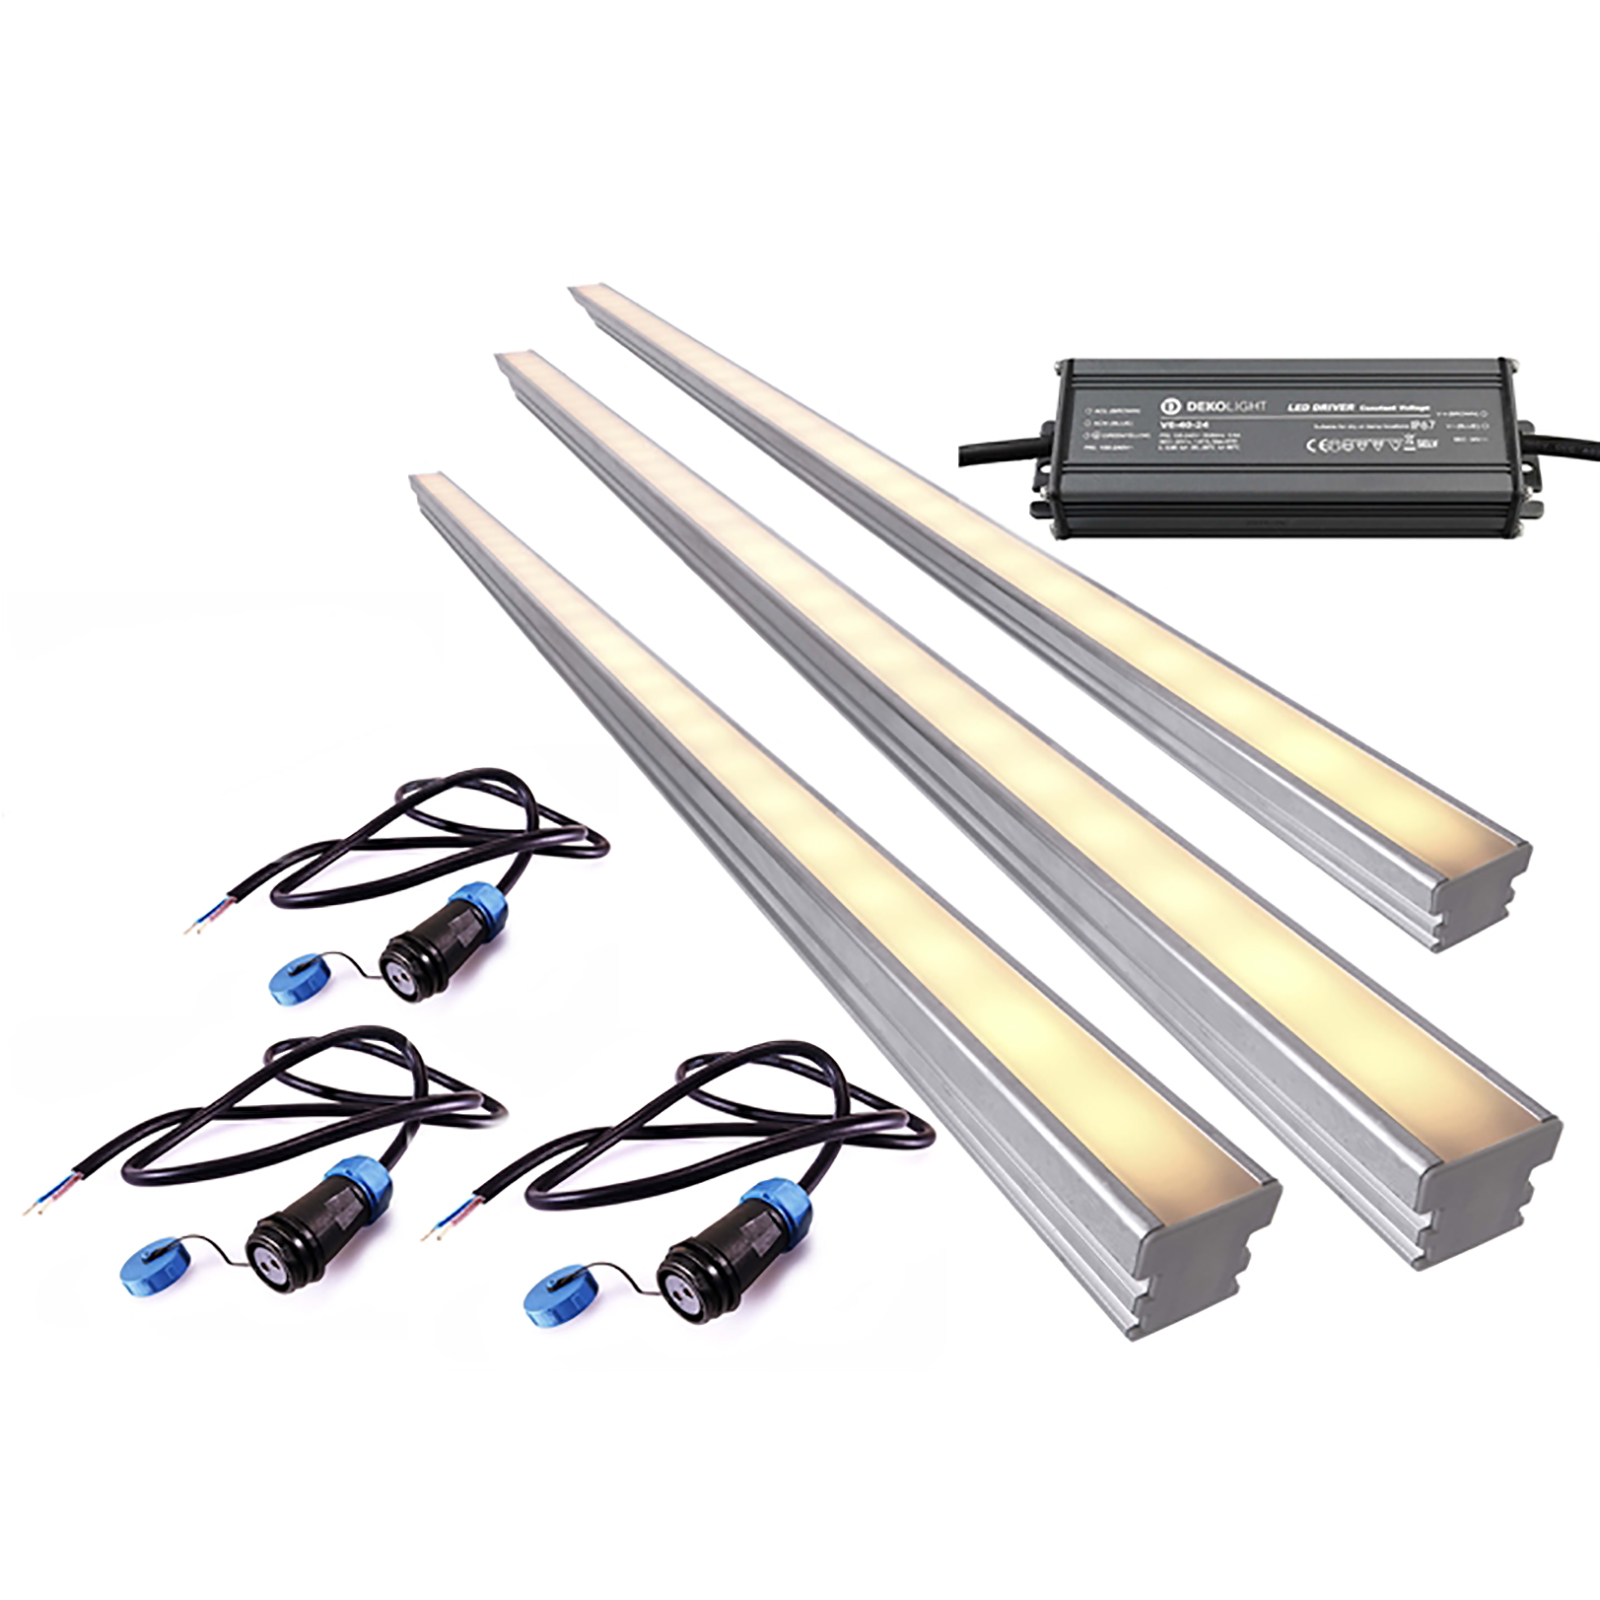 KIT 3 profile 2m recessed floor LED 54W driveway 1T IP67 power supply 24V